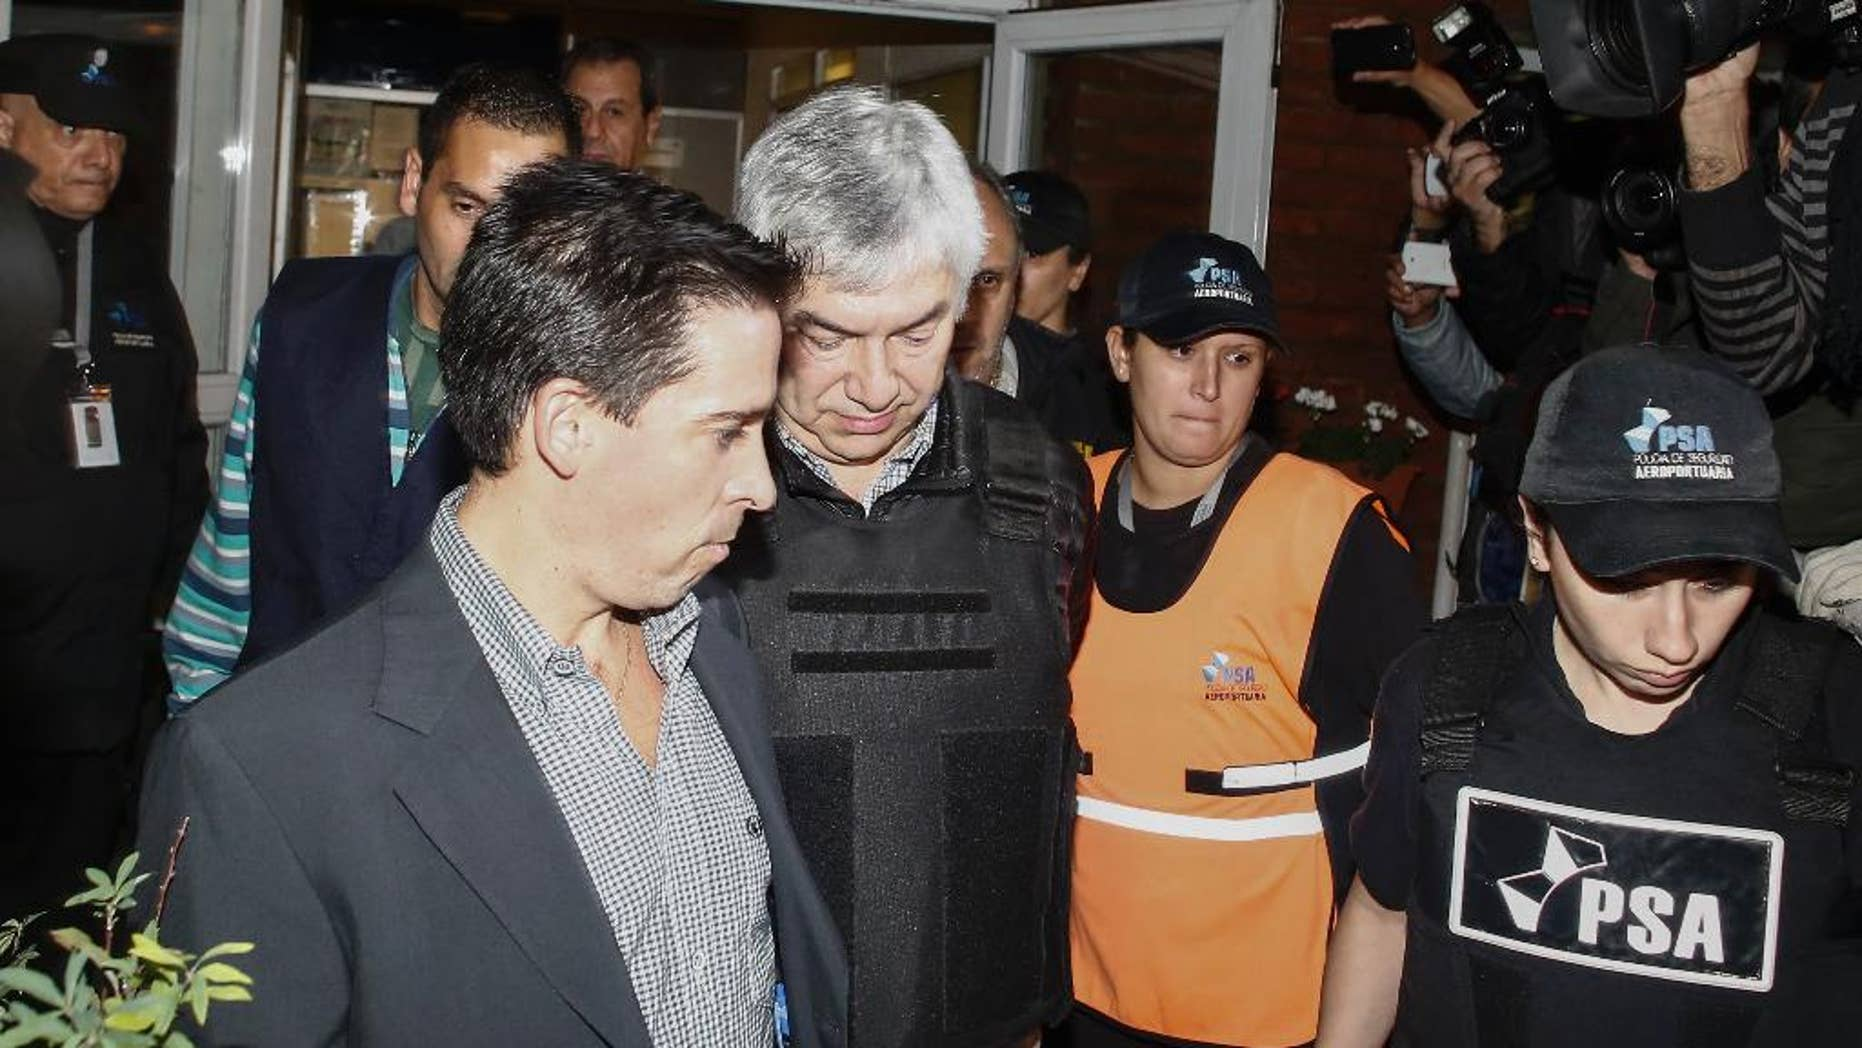 Argentine businessman Lazaro Baez, center, is escorted by police after being arrested as part of an investigation into alleged money laundering, at an airport on the outskirts of Buenos Aires, Argentina, late Tuesday, April 5, 2016. Baez, who got large public works contracts during the Kirchner and Fernandez administrations, is accused of embezzling and laundering millions. He denies any wrongdoing. (AP Photo/Agustin Marcarian)